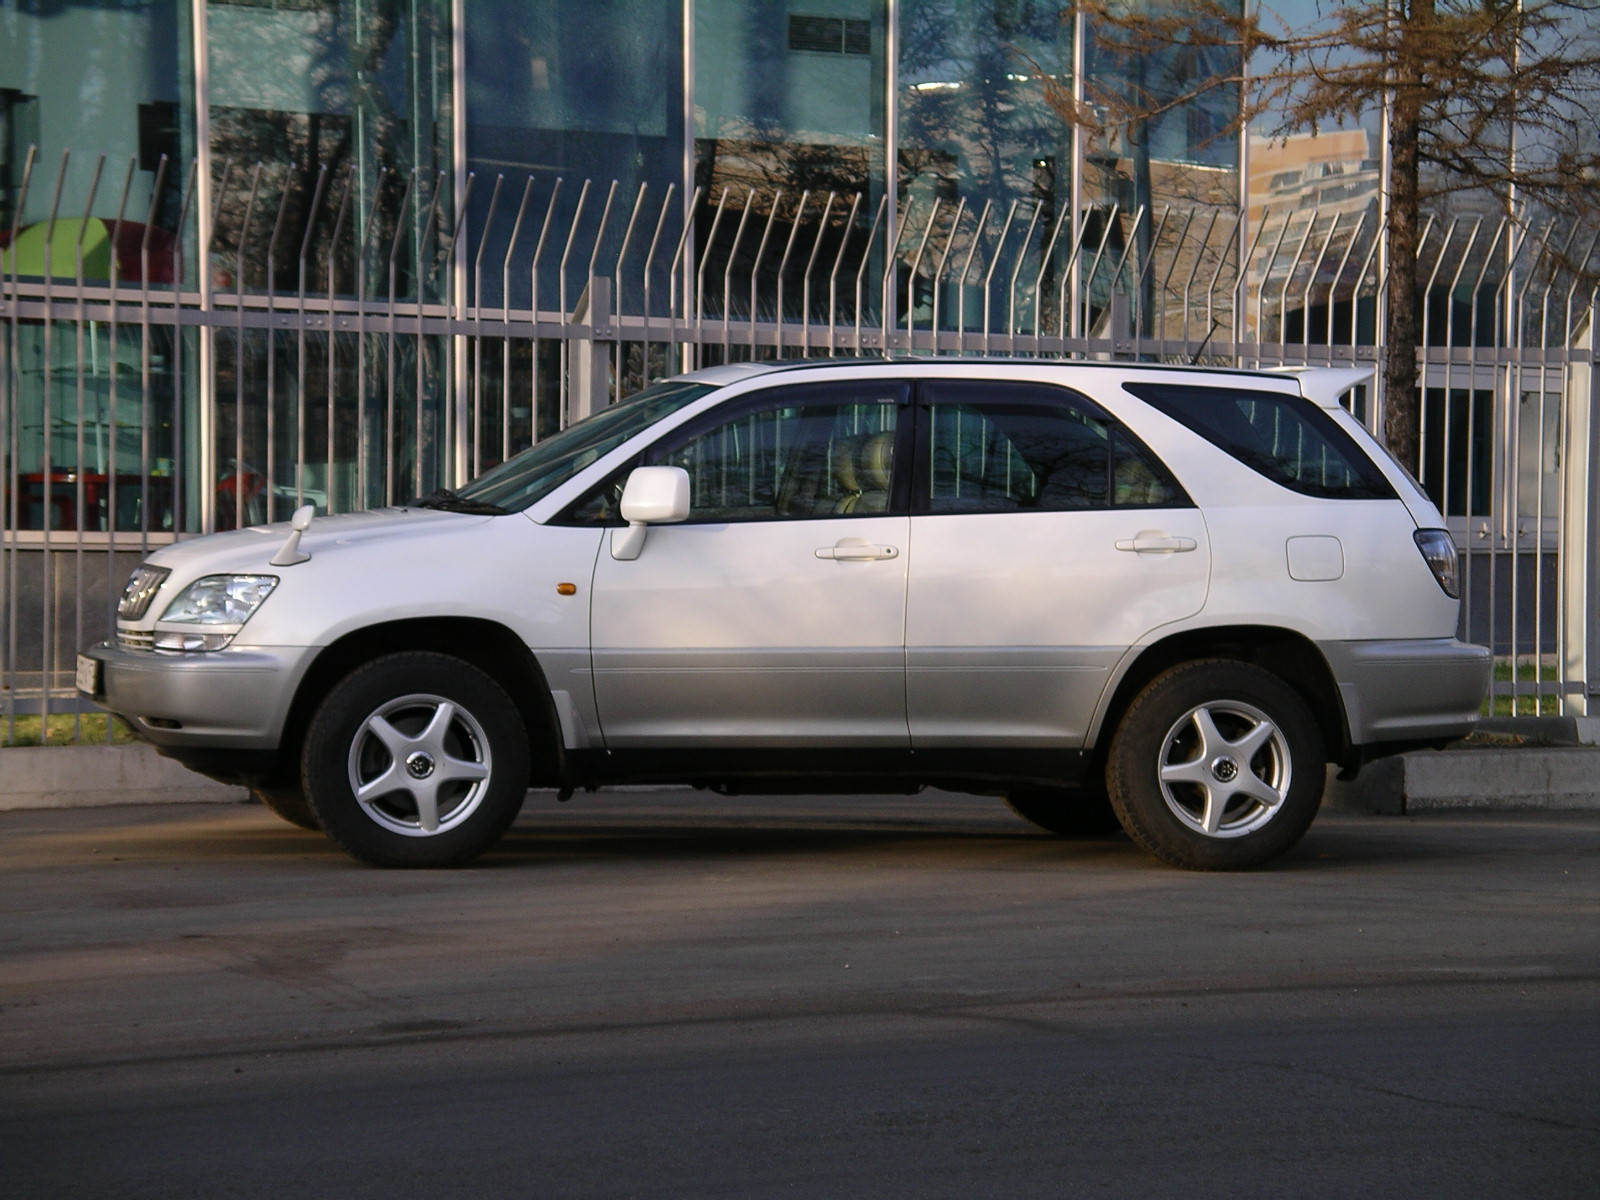 Toyota Harrier 2001 photo - 3